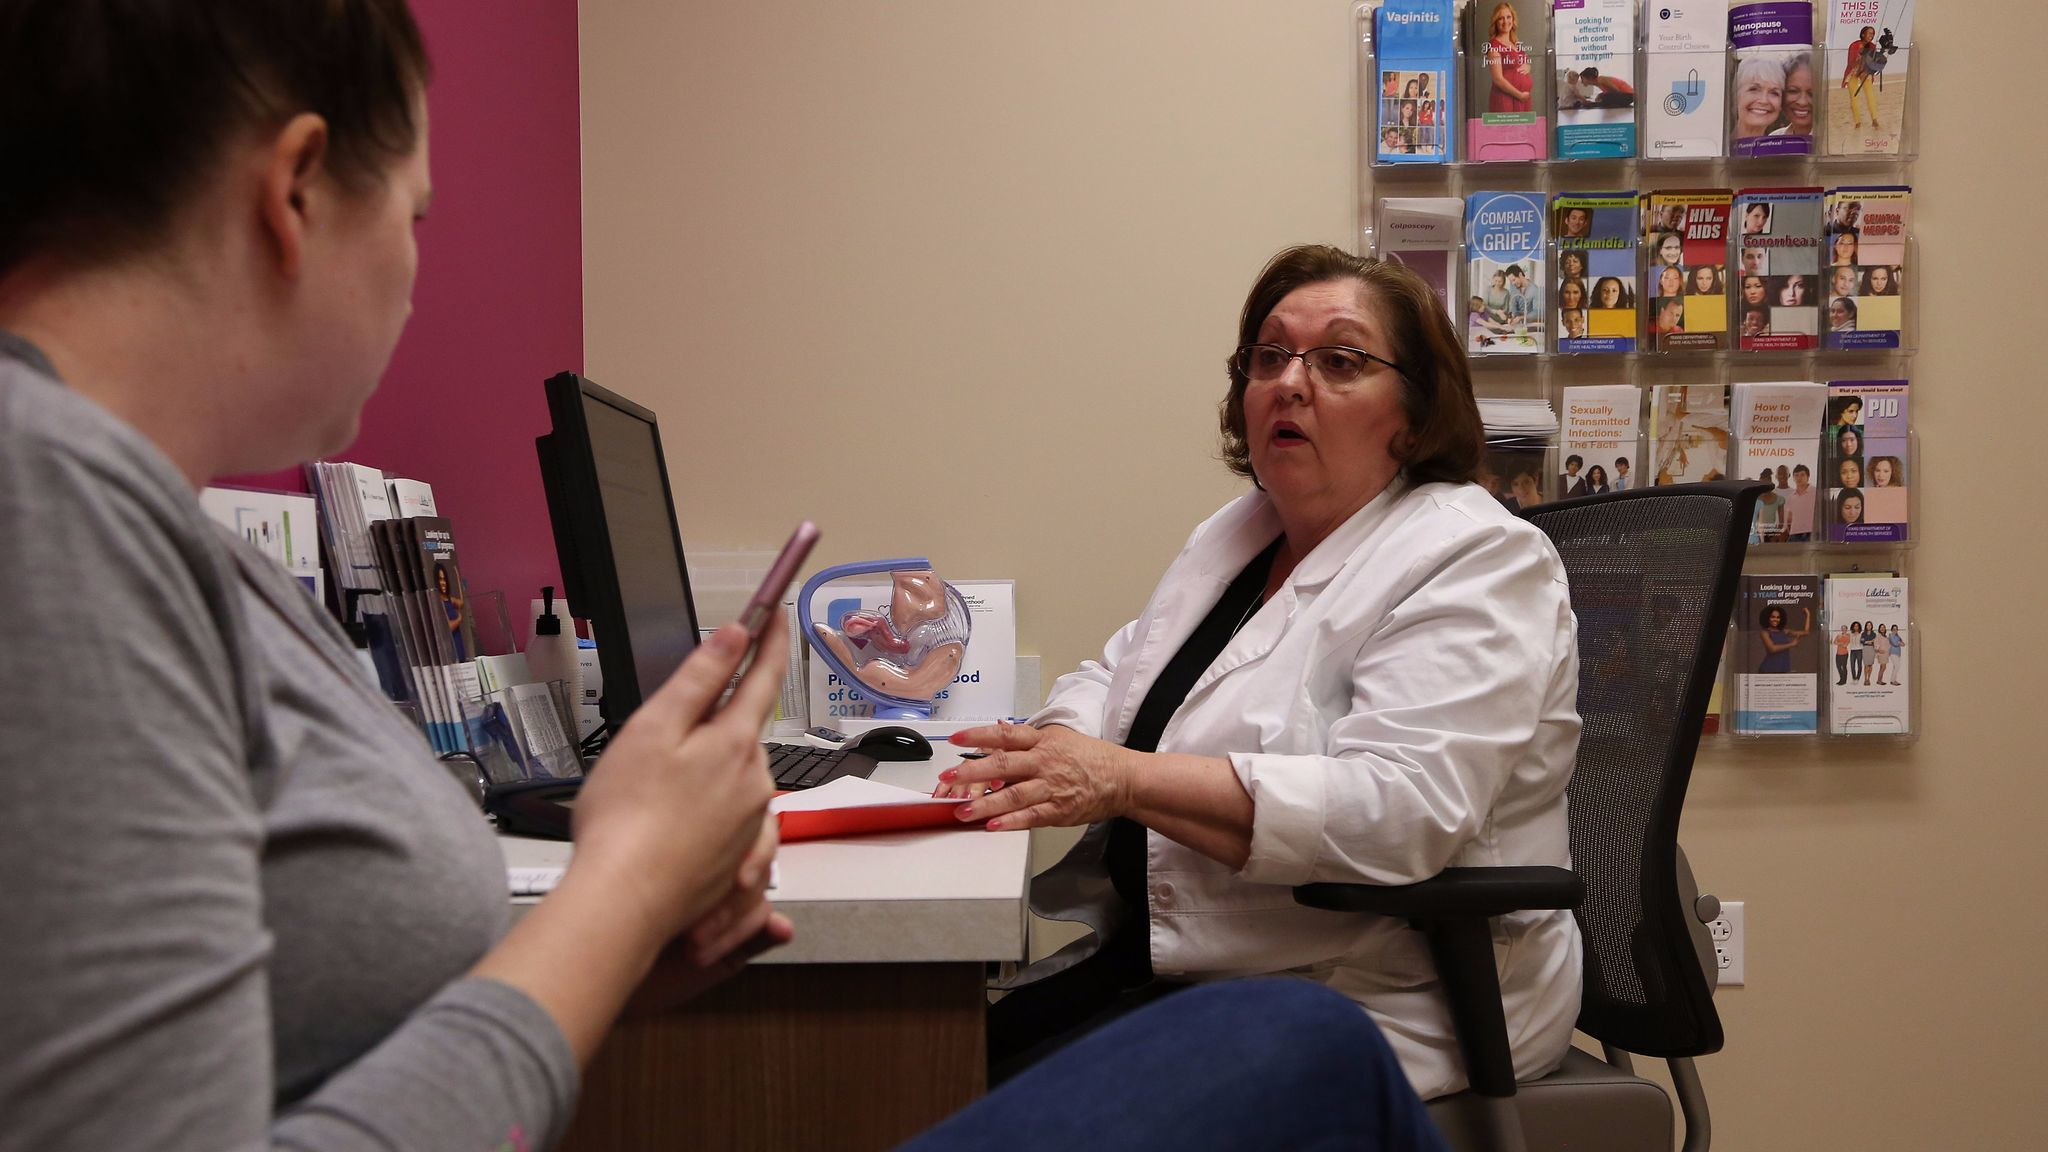 Vivian Bigelow, a nurse practitioner, discusses birth control options with a patient at a Planned Parenthood health center in Plano, Texas.  The Republican healthcare plans would prohibit Medicaid recipients from using their benefits at Planned Parent facilities for one year.